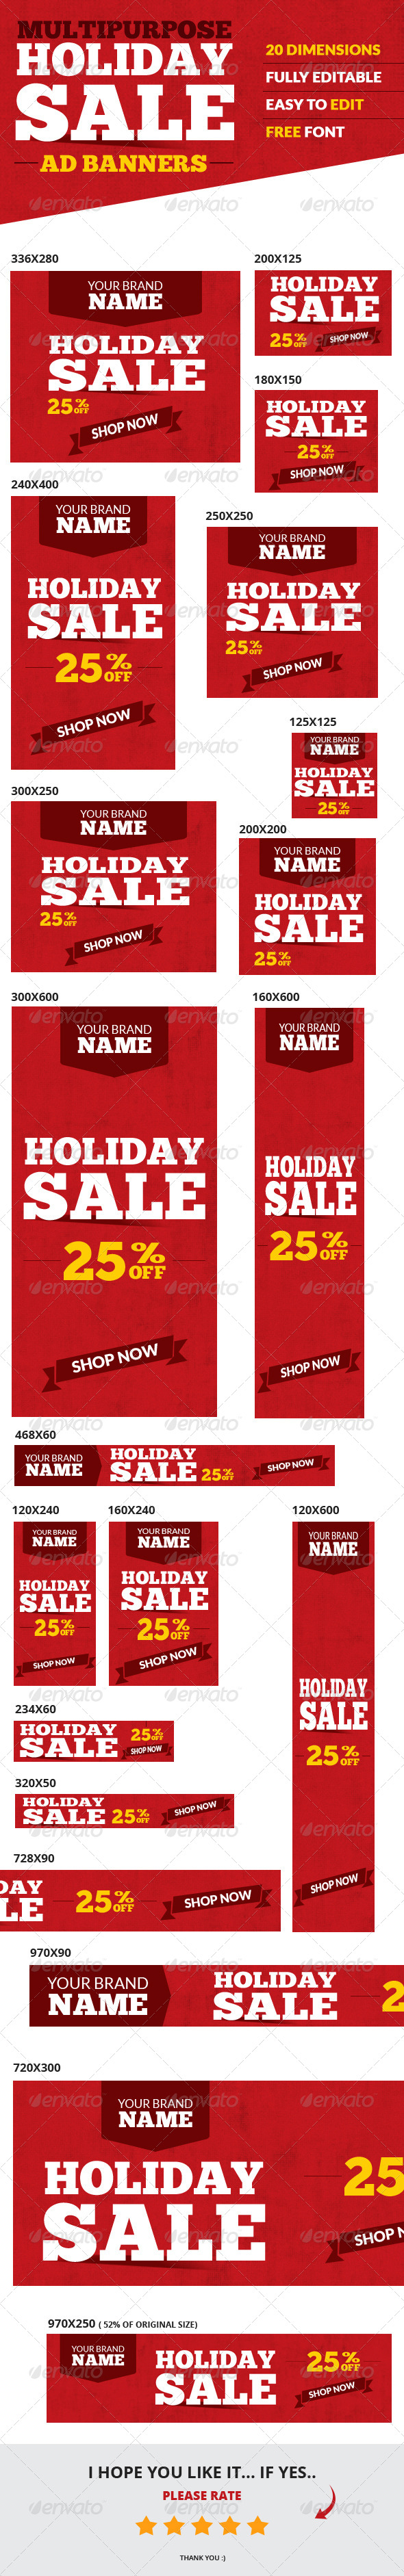 GraphicRiver Holiday Sale Web Ad Banners Multipurpose 6389149